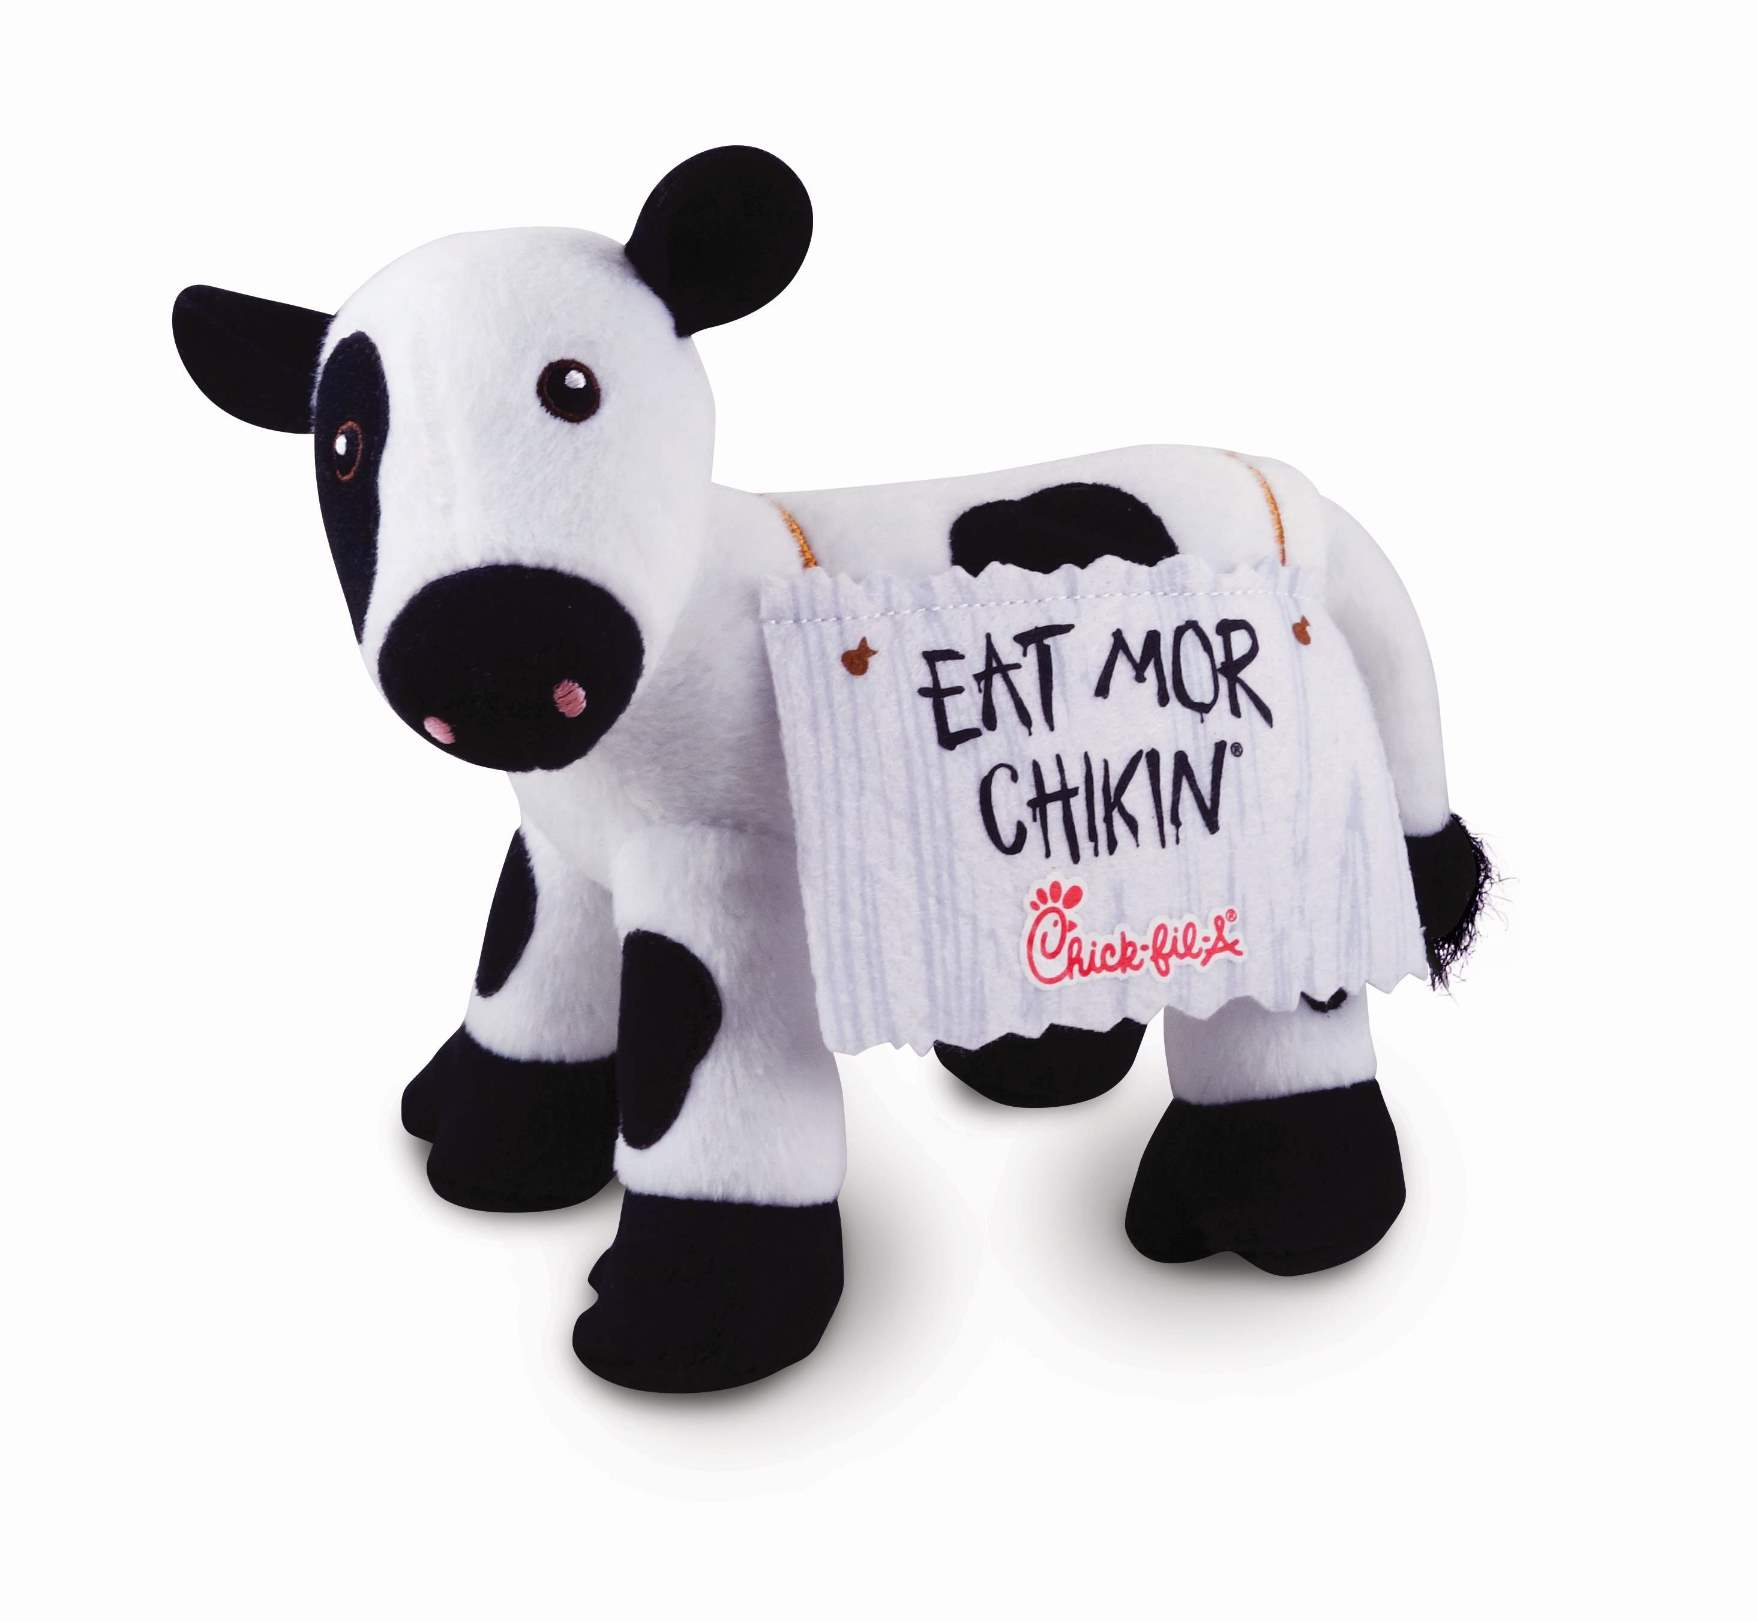 Cow Appreciation Day Contest: 80 Designs, 3,000 Votes, 1 Winner ...